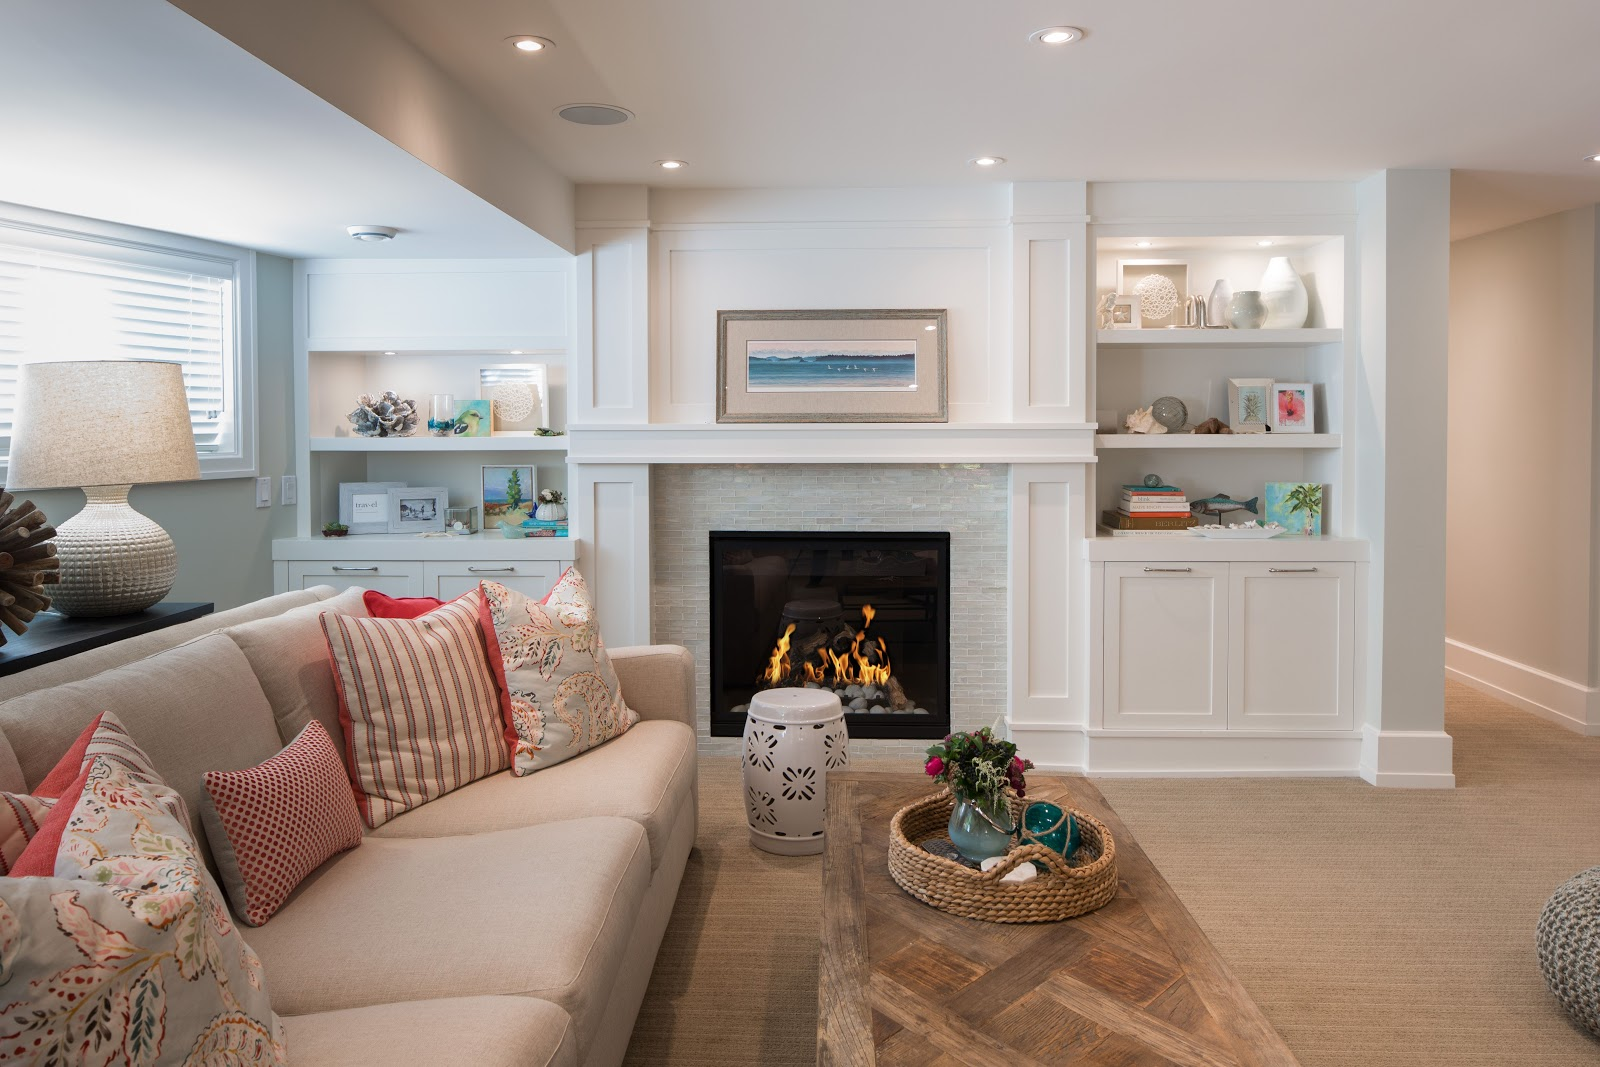 calgary interior design room polish, quick refresh to revive outdated or boring spaces